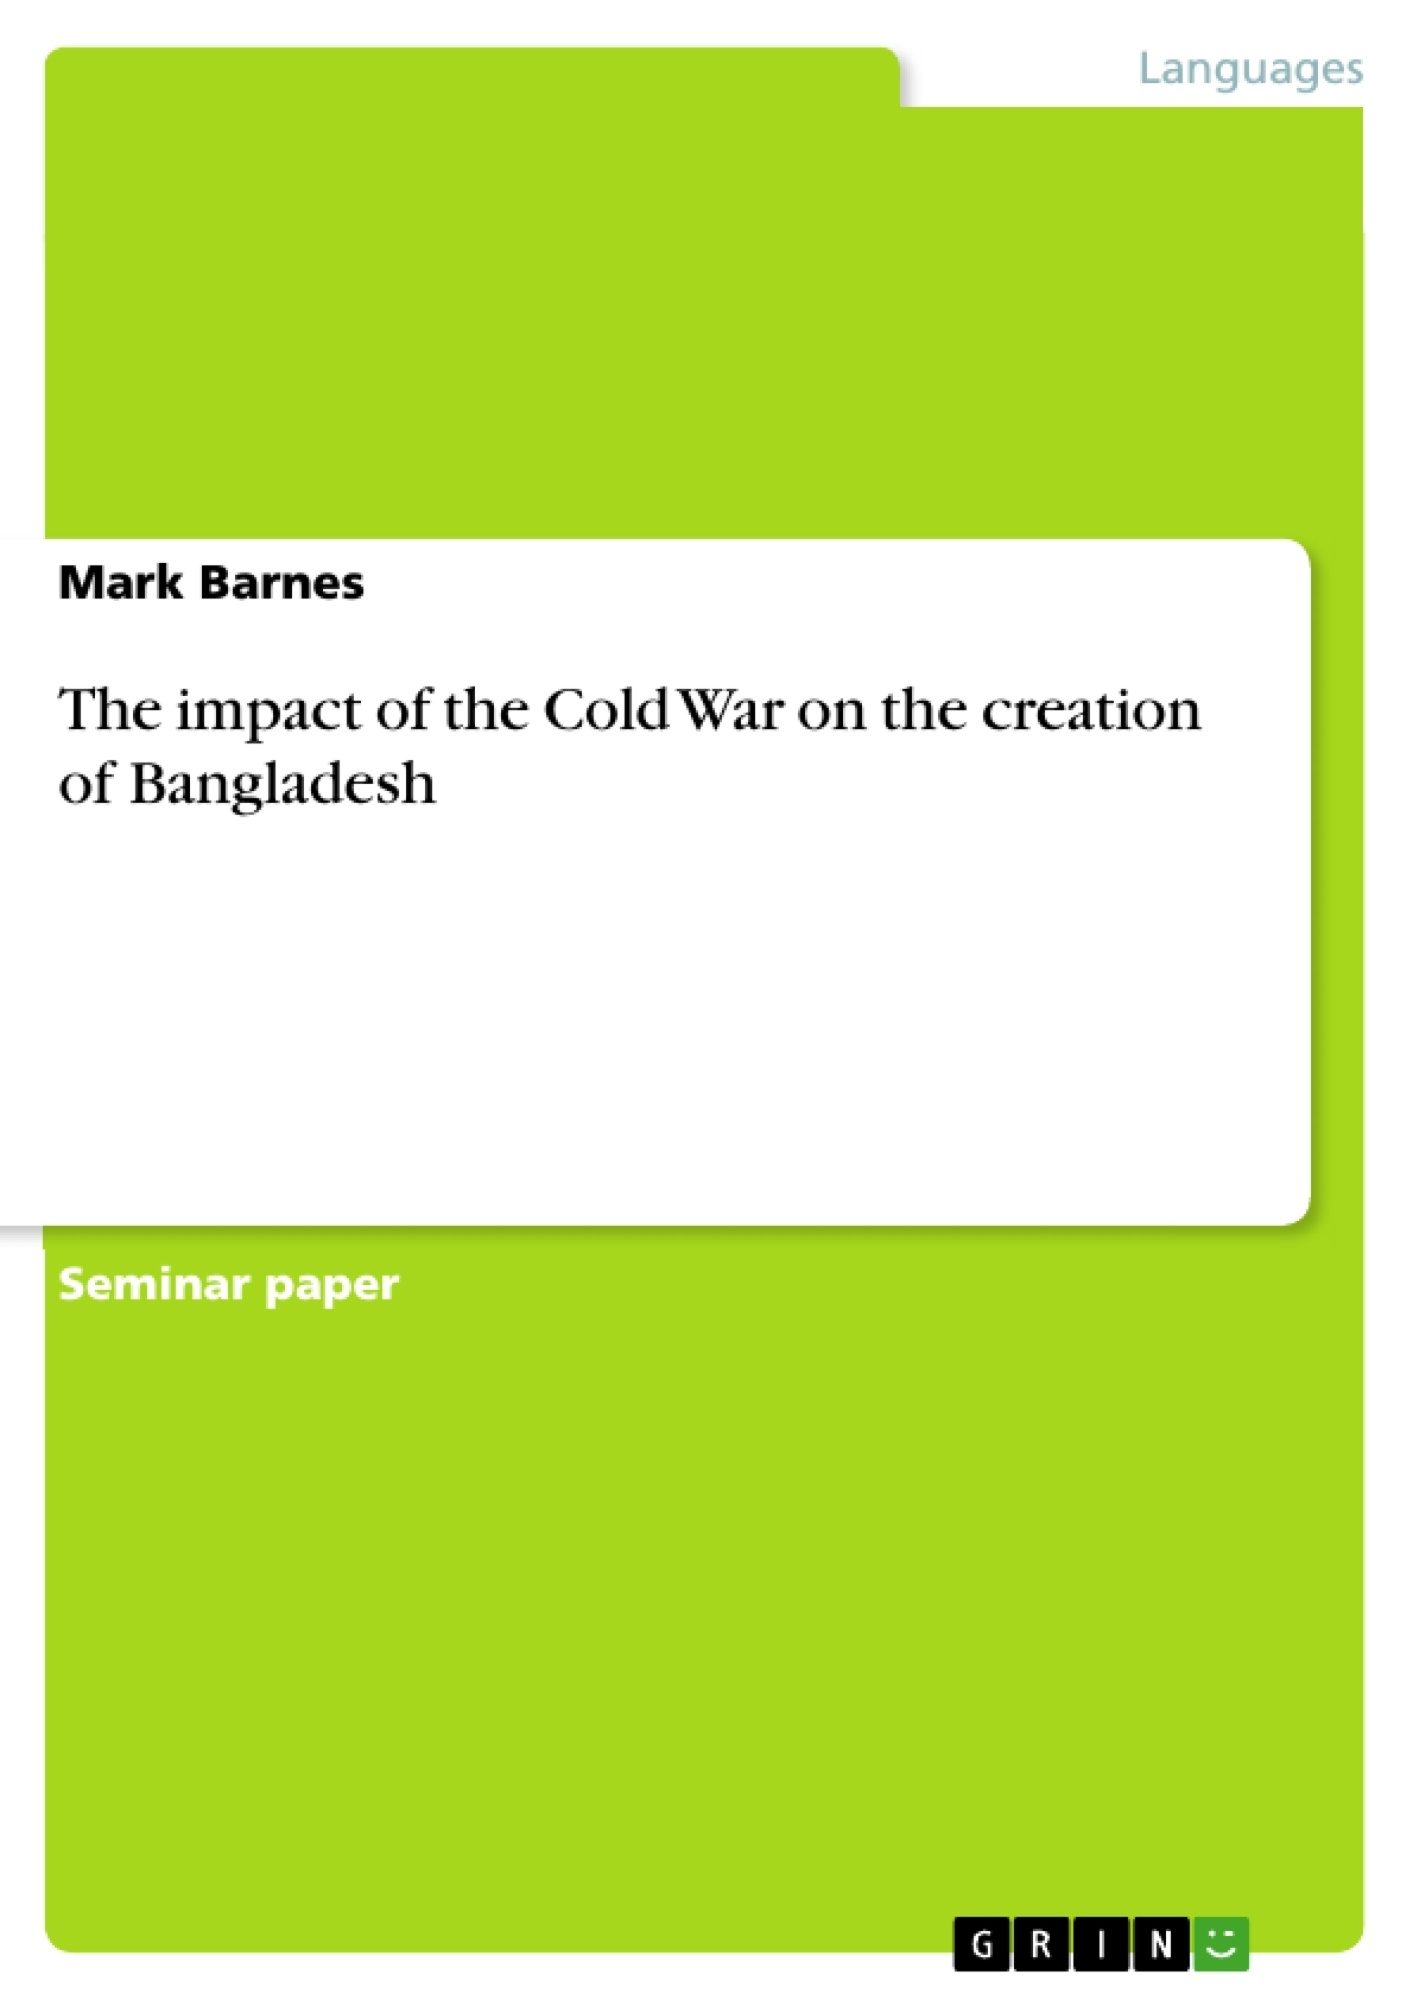 GRIN - The impact of the Cold War on the creation of Bangladesh